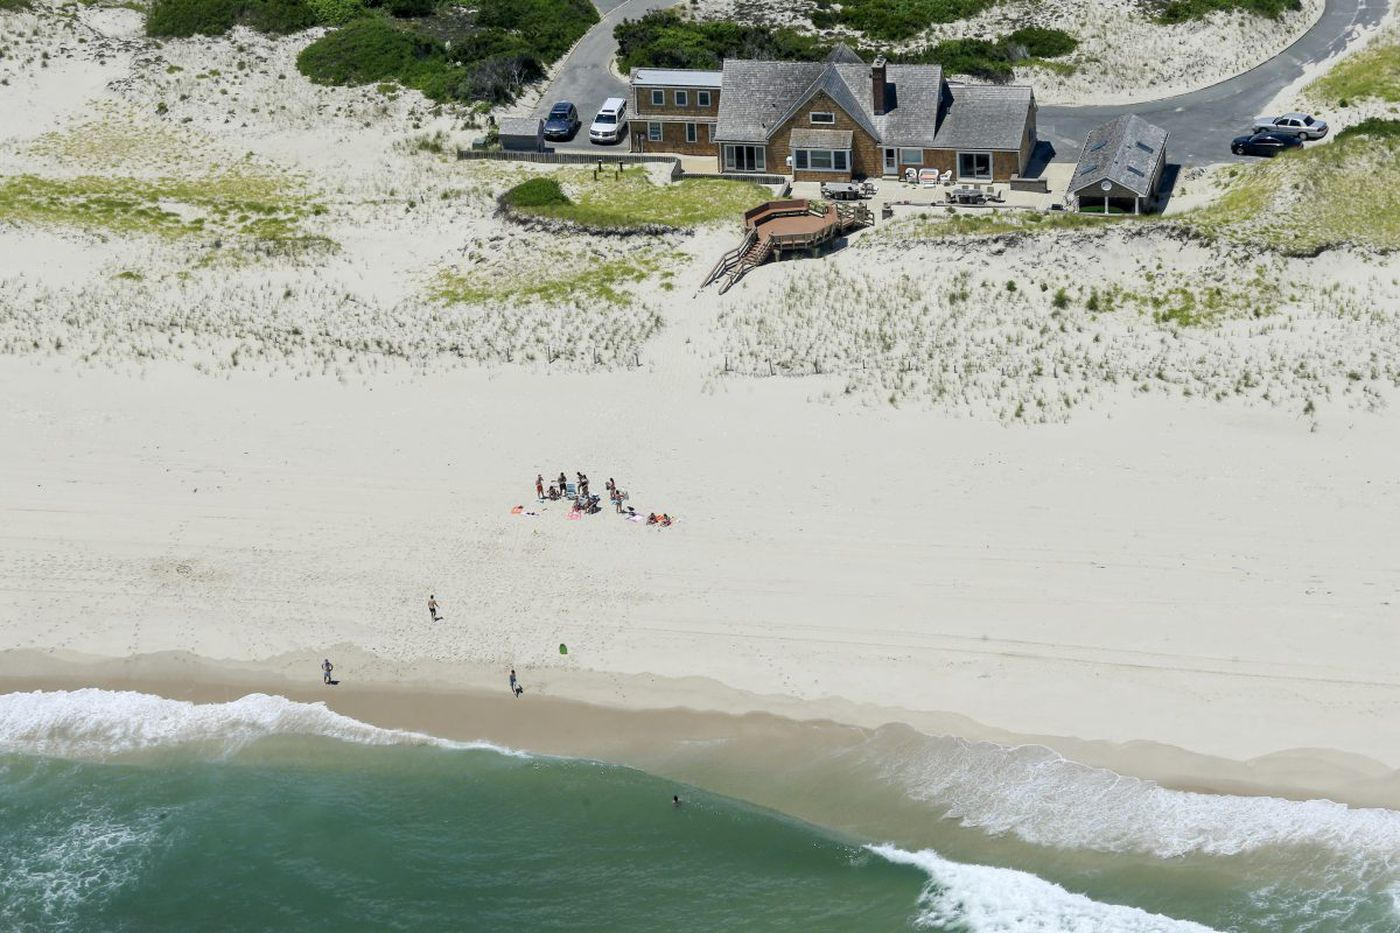 Chris Christie's day at the beach: Social media reacts